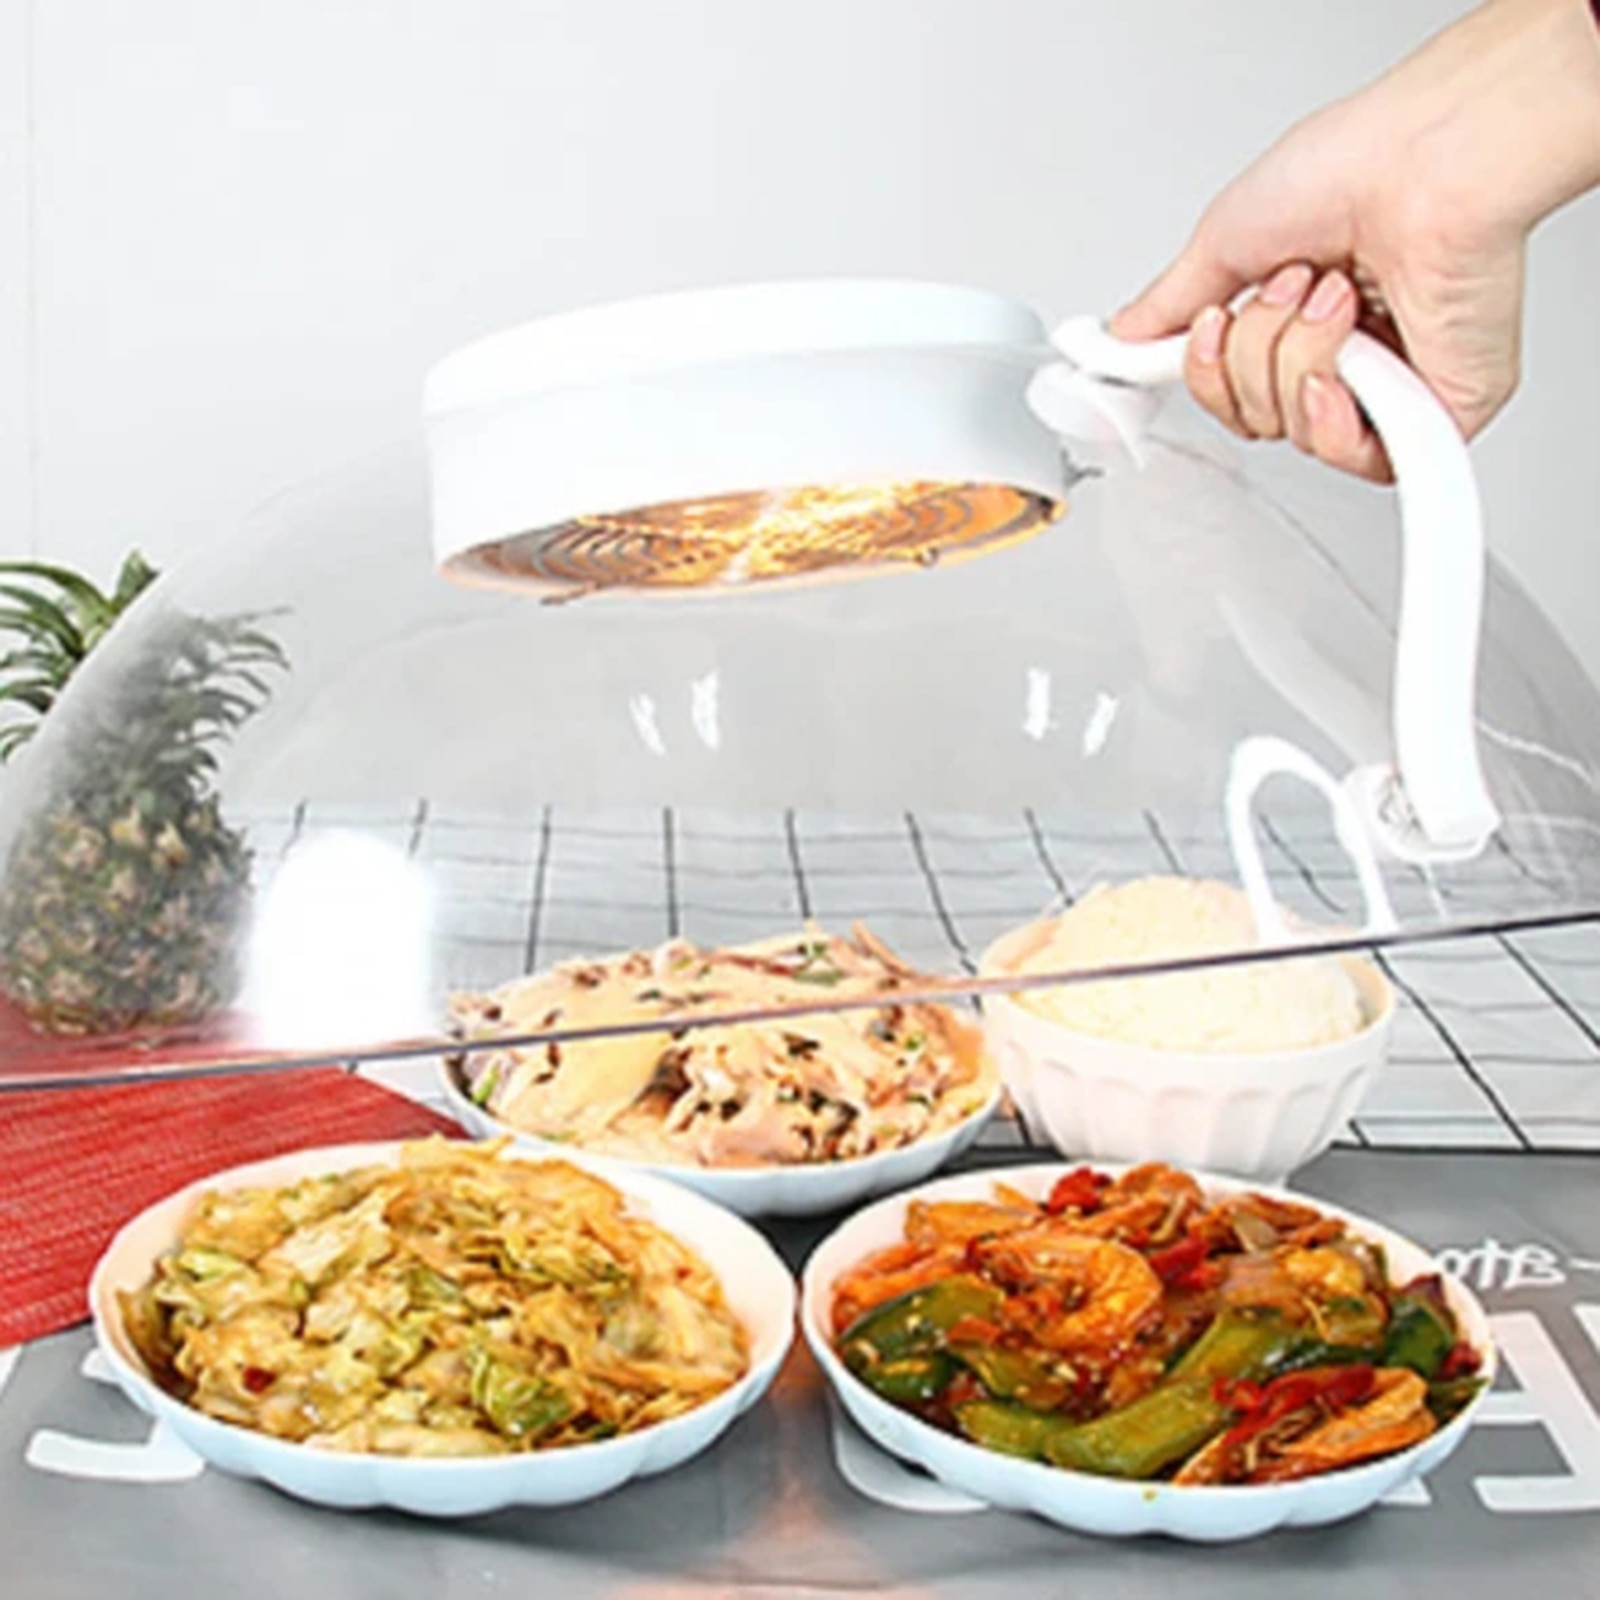 Heating Sealing Cover for Food Meal Intelligent Smart Electric Heating Food Insulation Cover Multi-Function DAG-ship